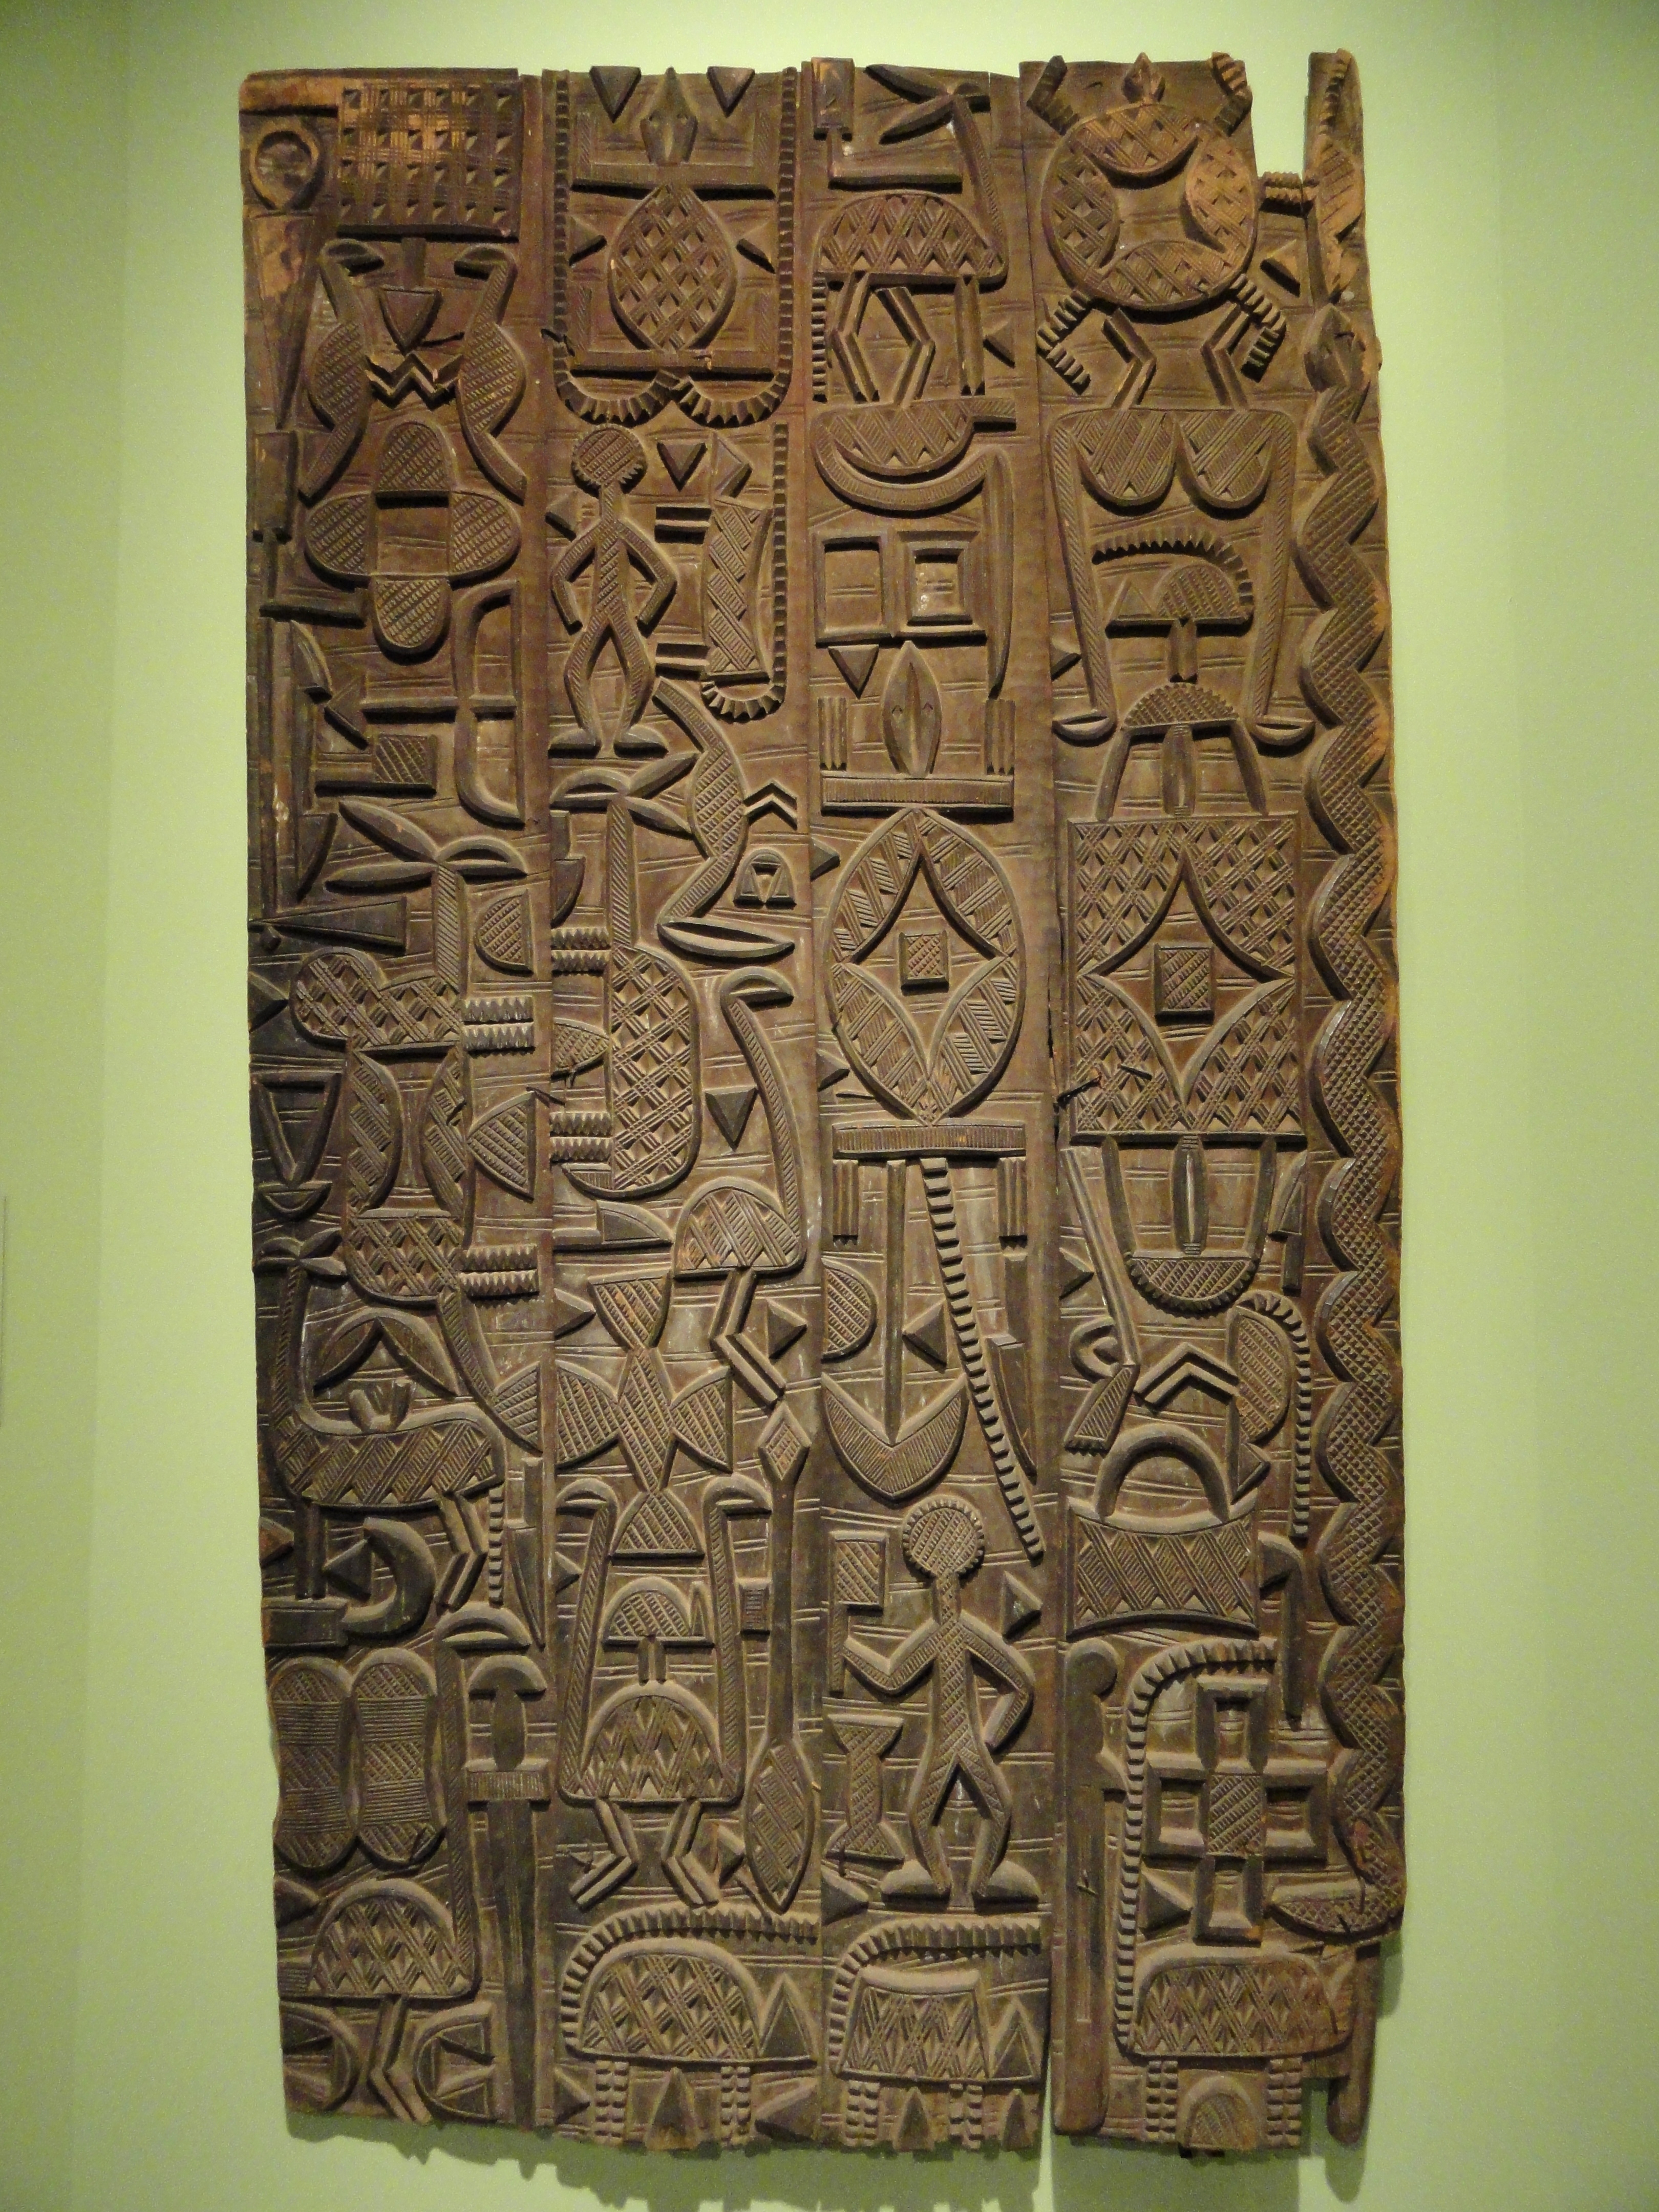 """""""Carved door; circa 1920-1940; wood with iron staples; by Nupe people; Hood Museum of Art (Hanover, New Hampshire, USA). Nupe art is often abstract, being well known for their wooden stools with patterns carved onto the surface."""" from https://en.wikipedia.org/wiki/African_sculpture"""